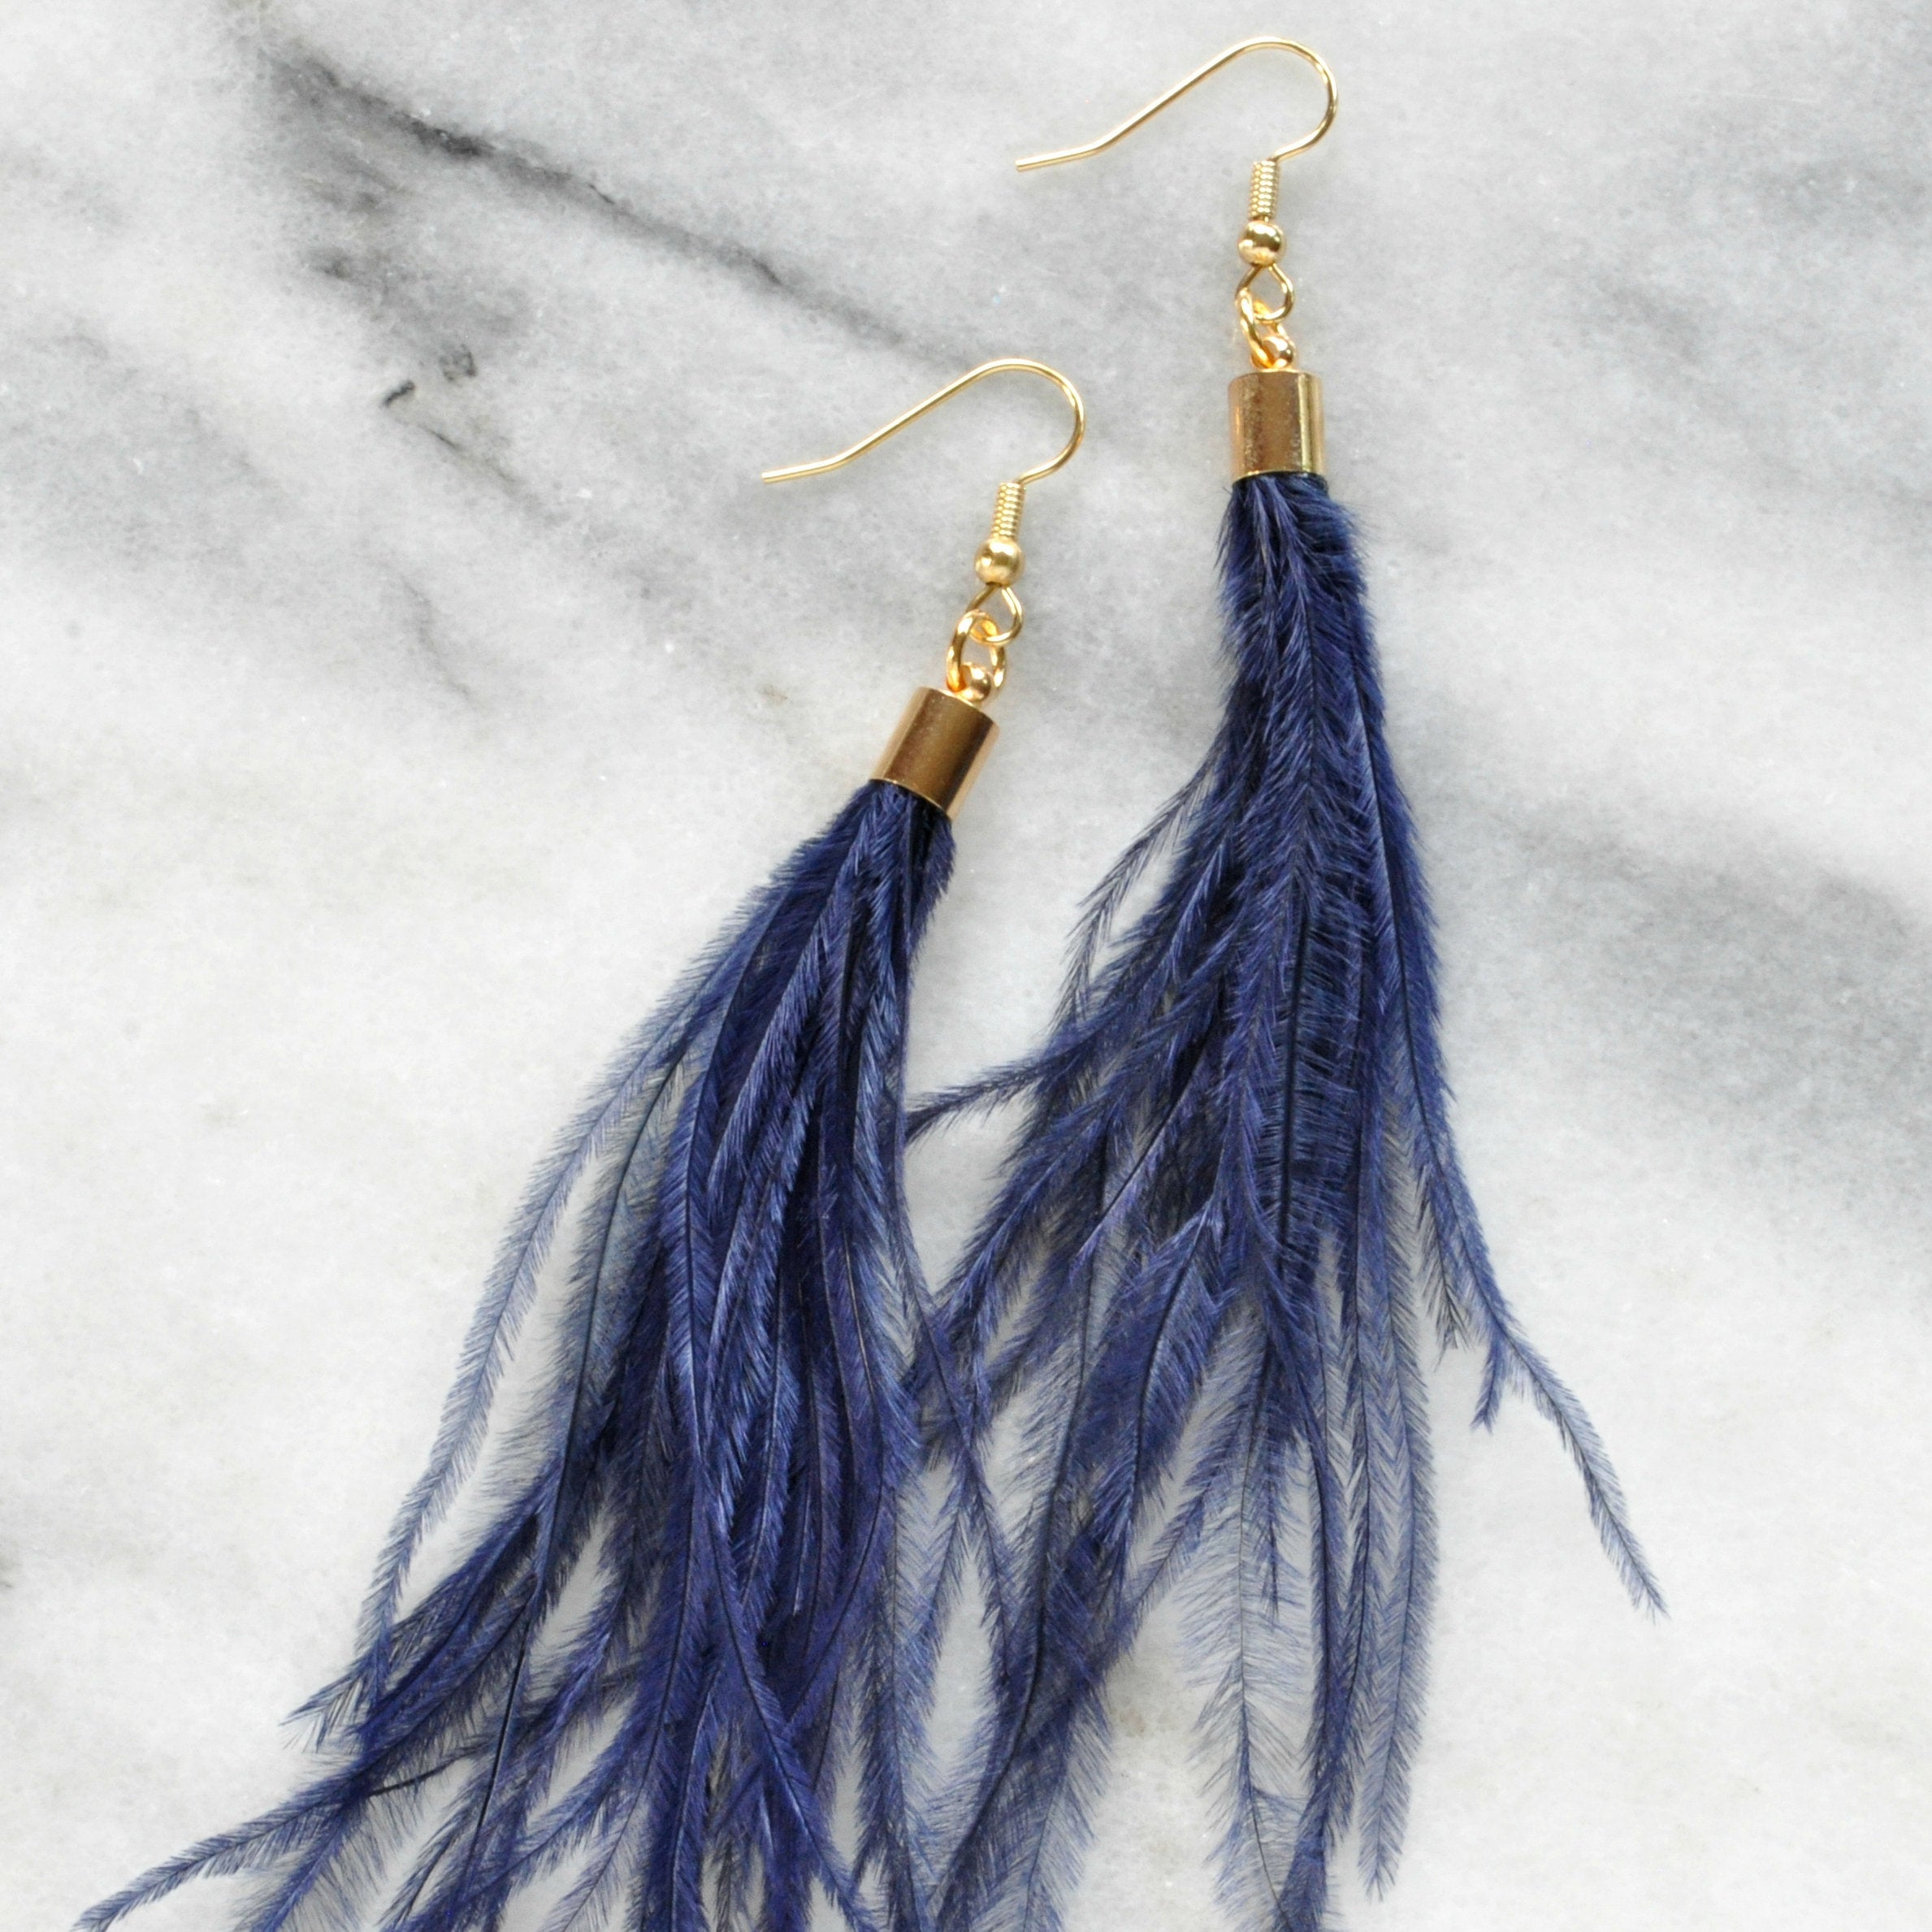 Libby & Smee Navy Blue Feather Earrings with Ostrich feathers and gold caps, close up